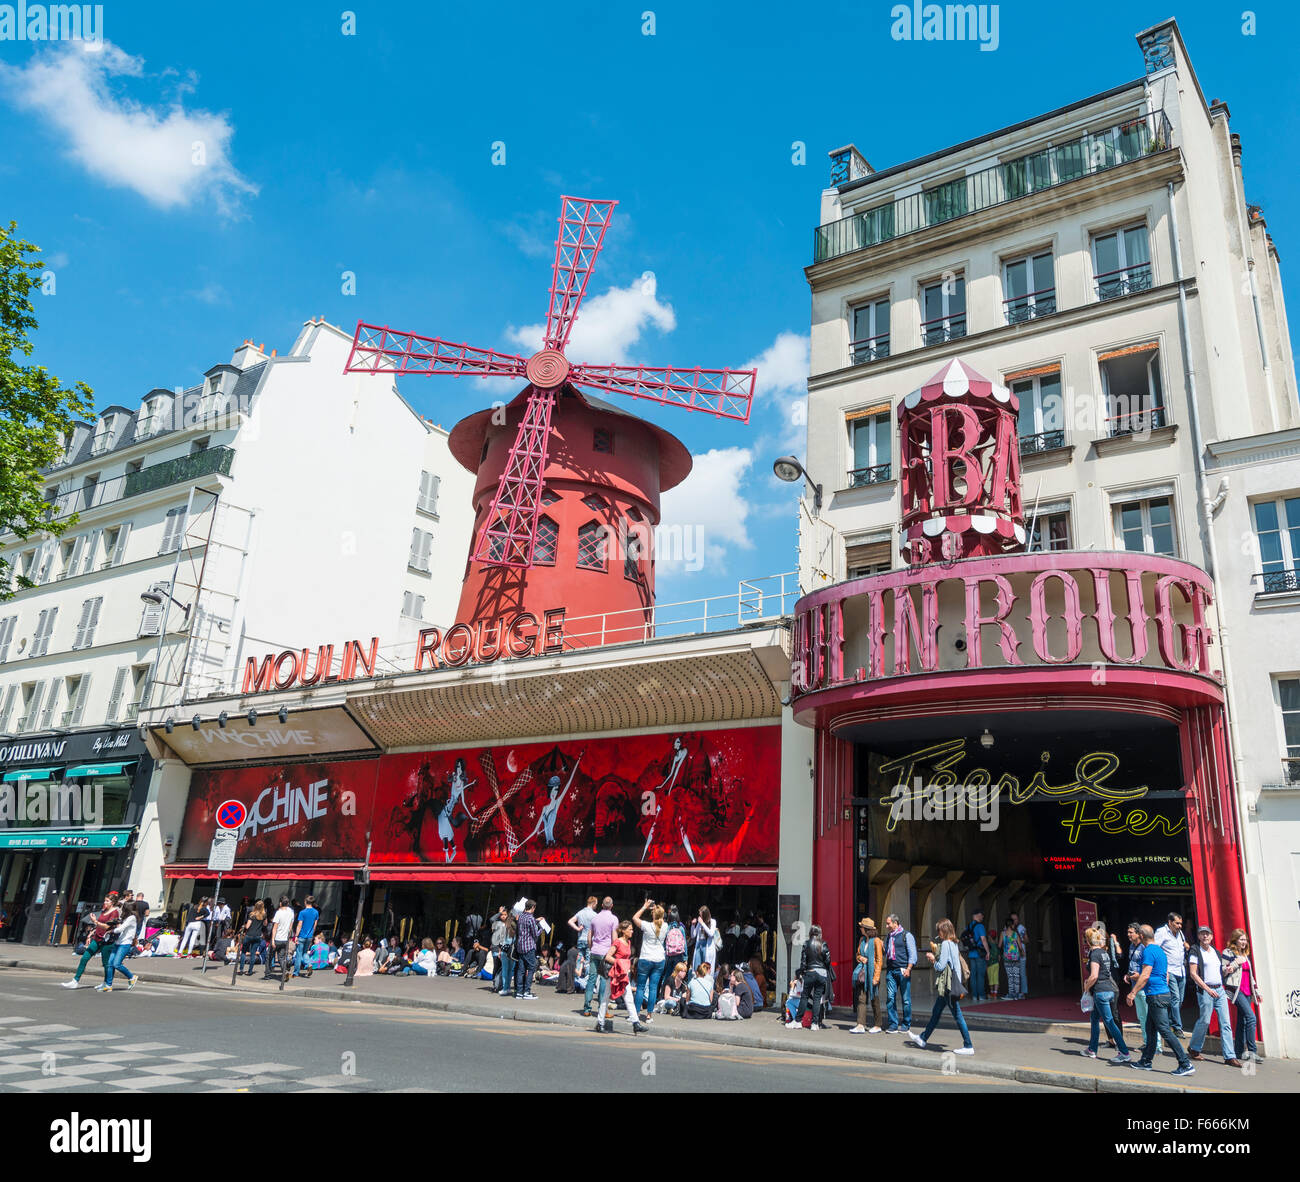 Moulin Rouge, Montmartre, Paris, Ile-de-France, France - Stock Image